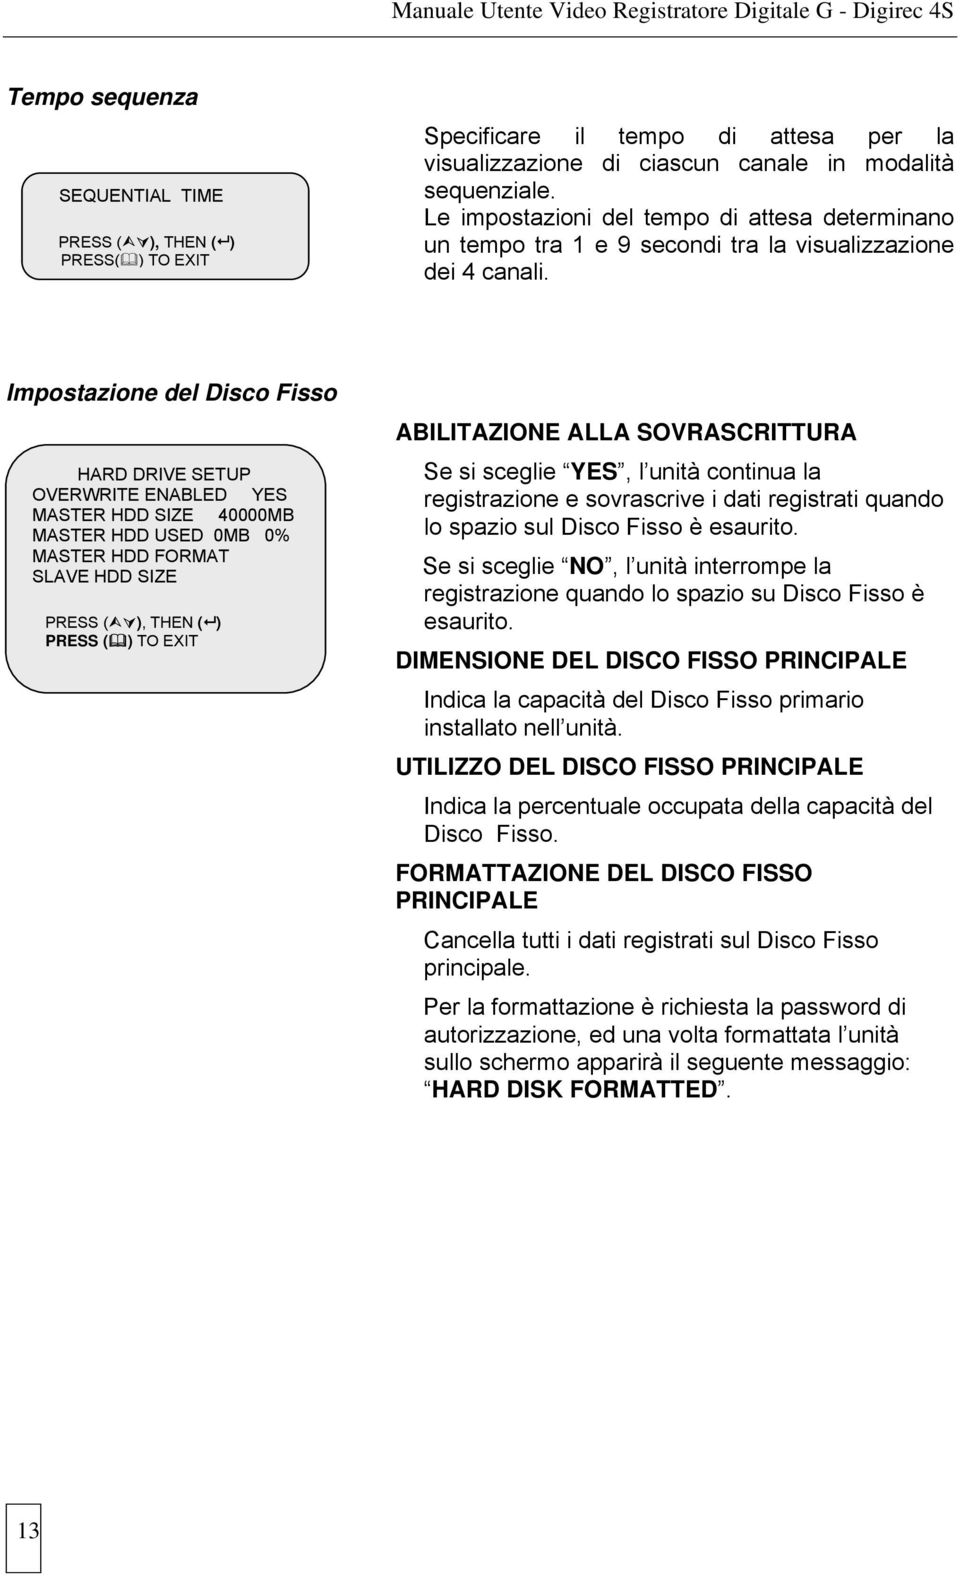 Impostazione del Disco Fisso HARD DRIVE SETUP OVERWRITE ENABLED YES MASTER HDD SIZE 40000MB MASTER HDD USED 0MB 0% MASTER HDD FORMAT SLAVE HDD SIZE PRESS ( ), THEN ( ) PRESS ( ) TO EXIT ABILITAZIONE